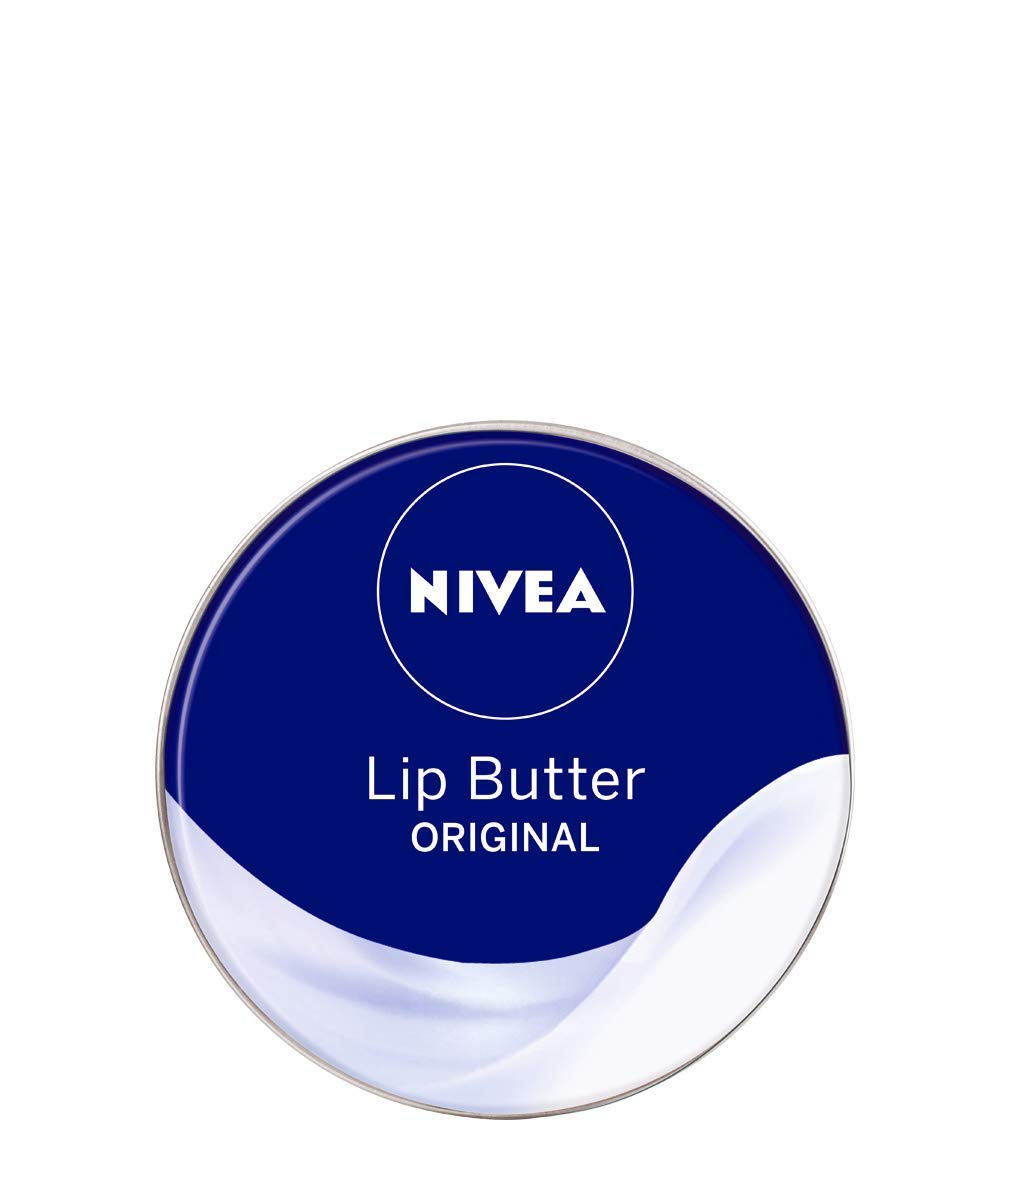 Nivea Lip Butter Original - 19 ml, Pack of 6 85253